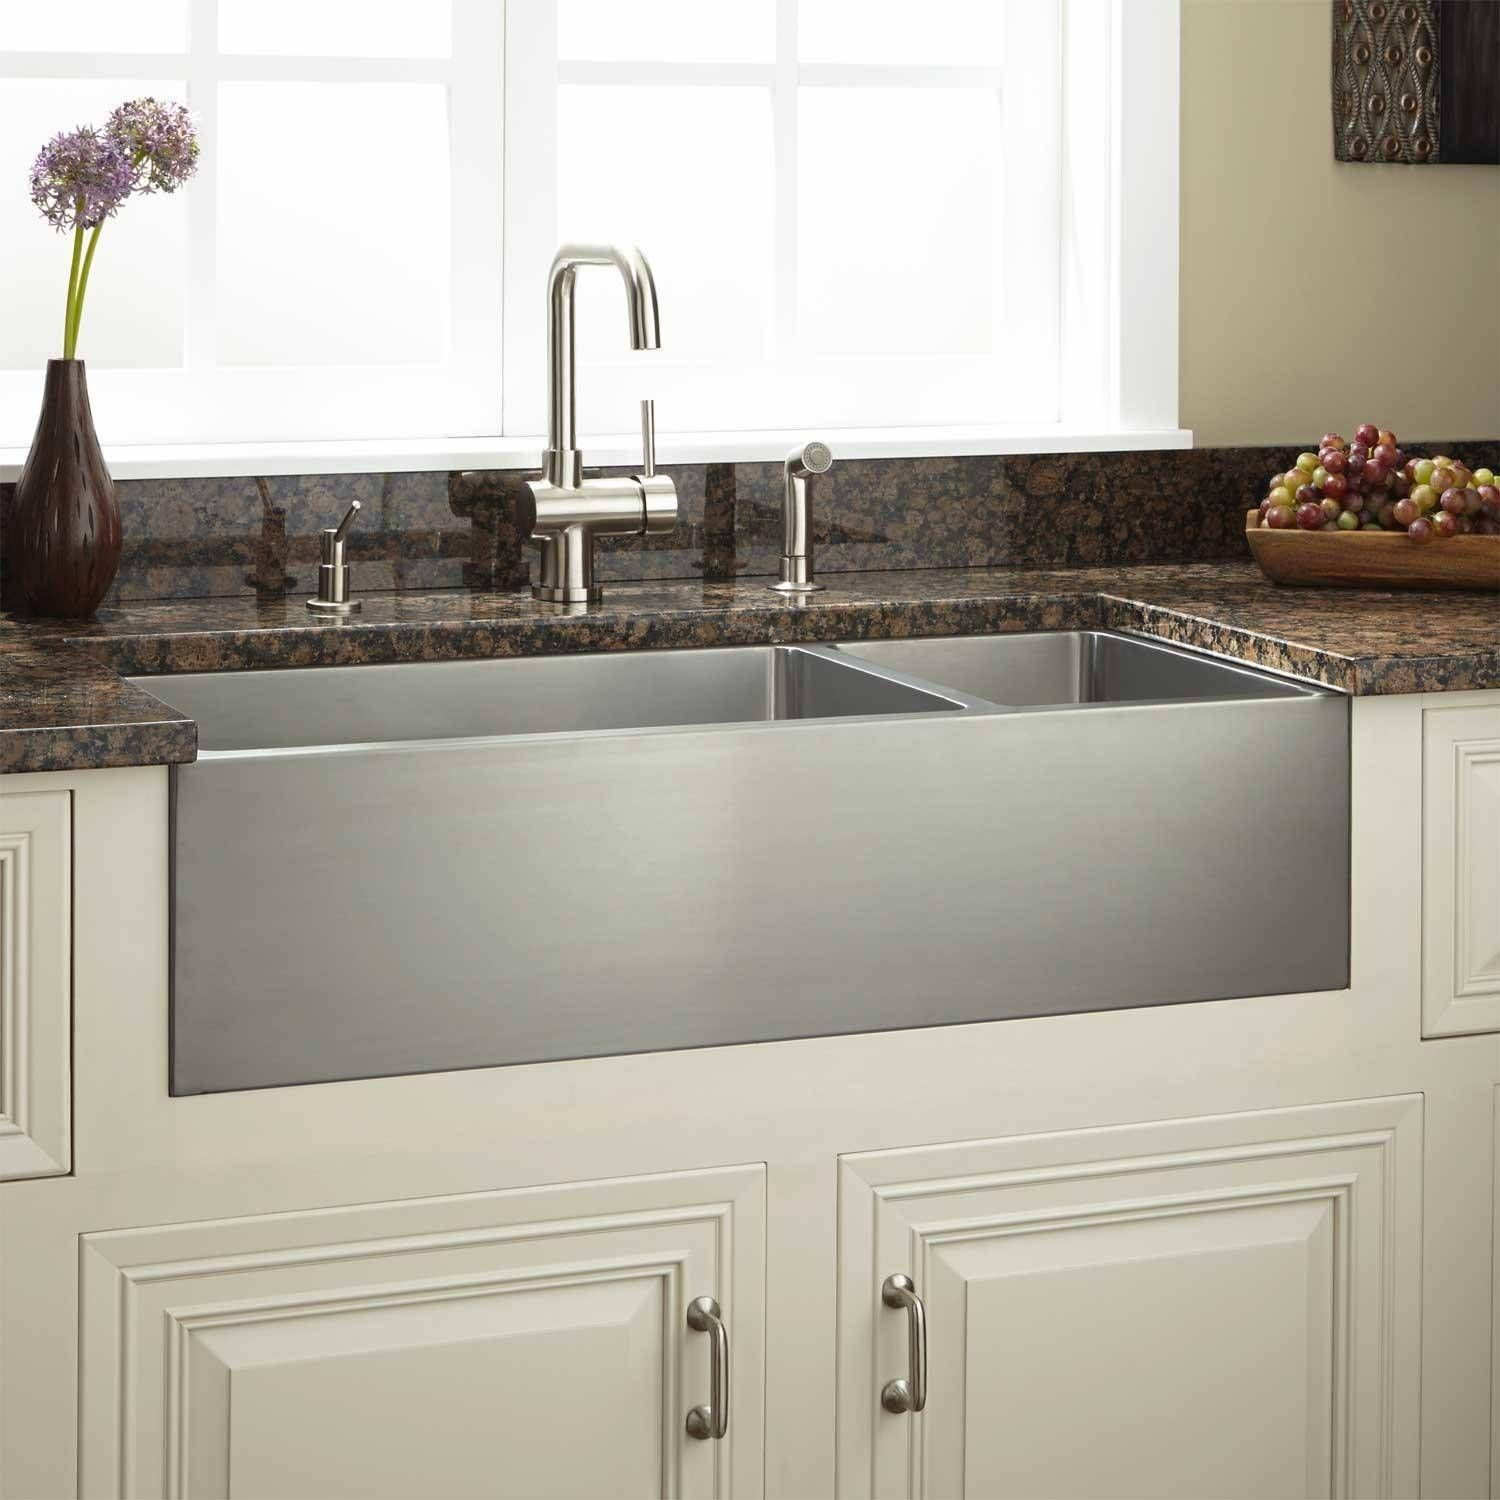 36 Atwood 70 30 Offset Double Bowl Stainless Steel Farmhouse Sink